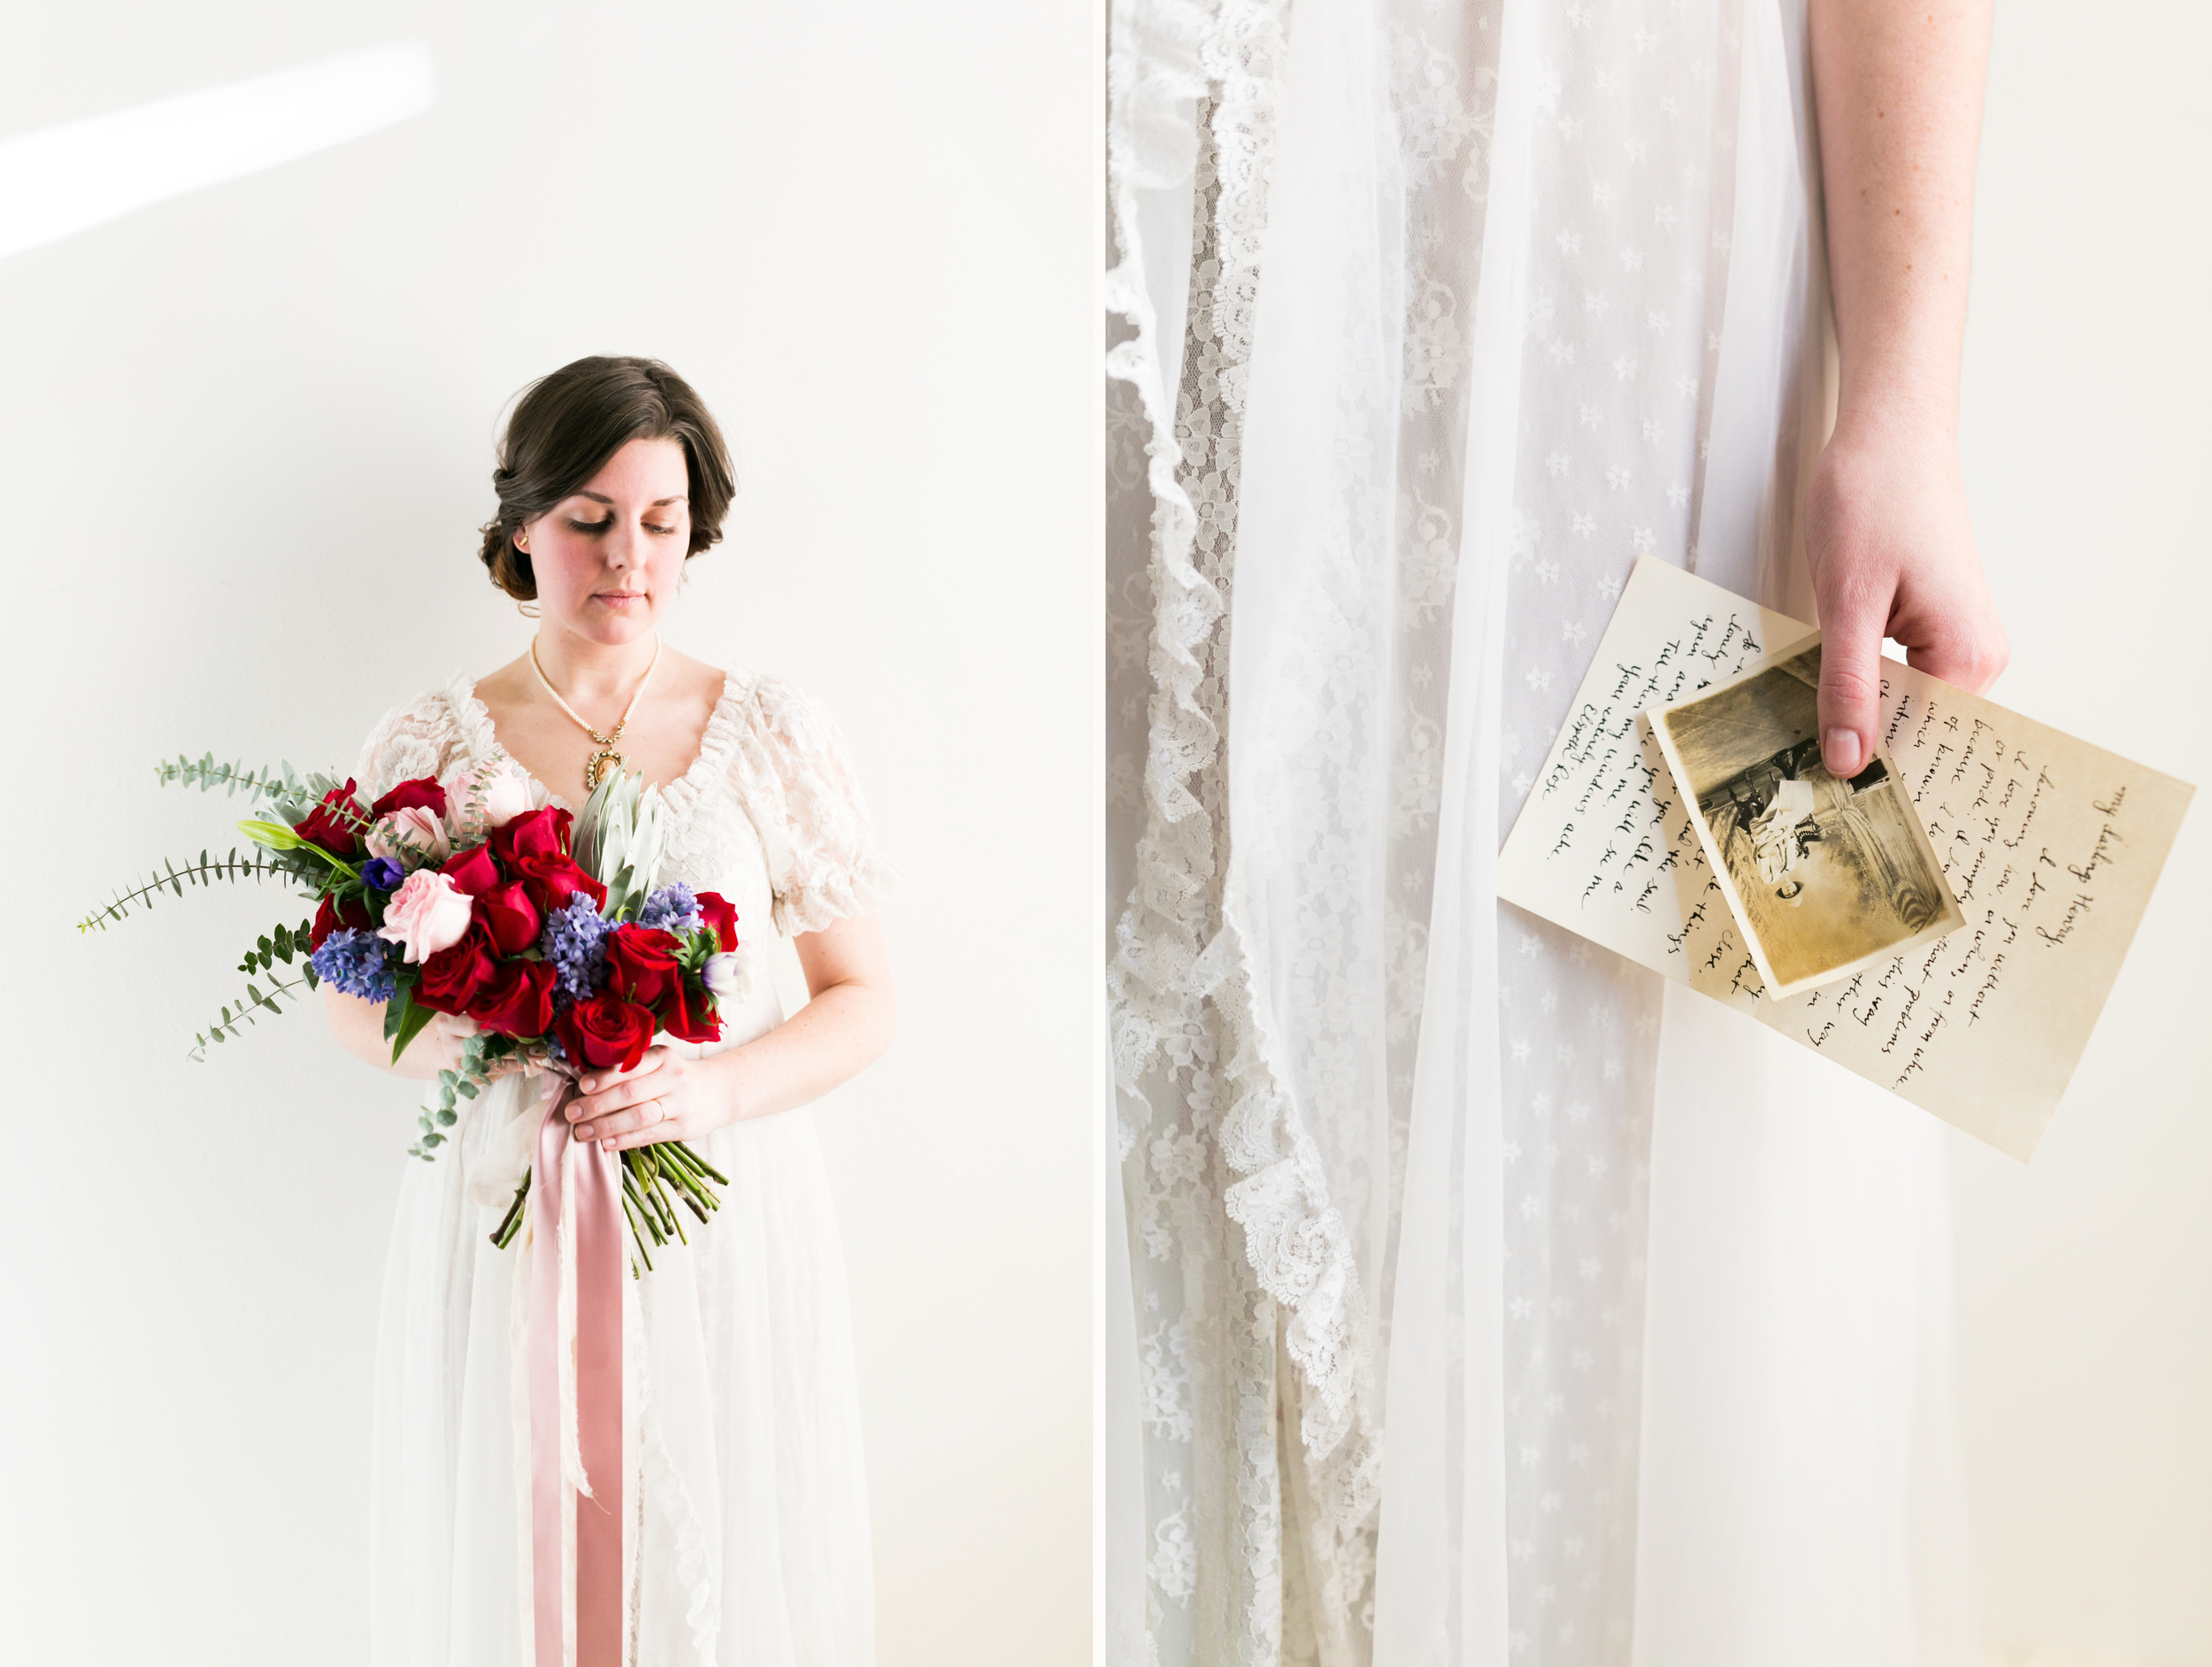 Valentines Bride and Her Bridesmaids  Styled Session  Hurtienne Photography  Portland Oregon Wedding Photographers (23)